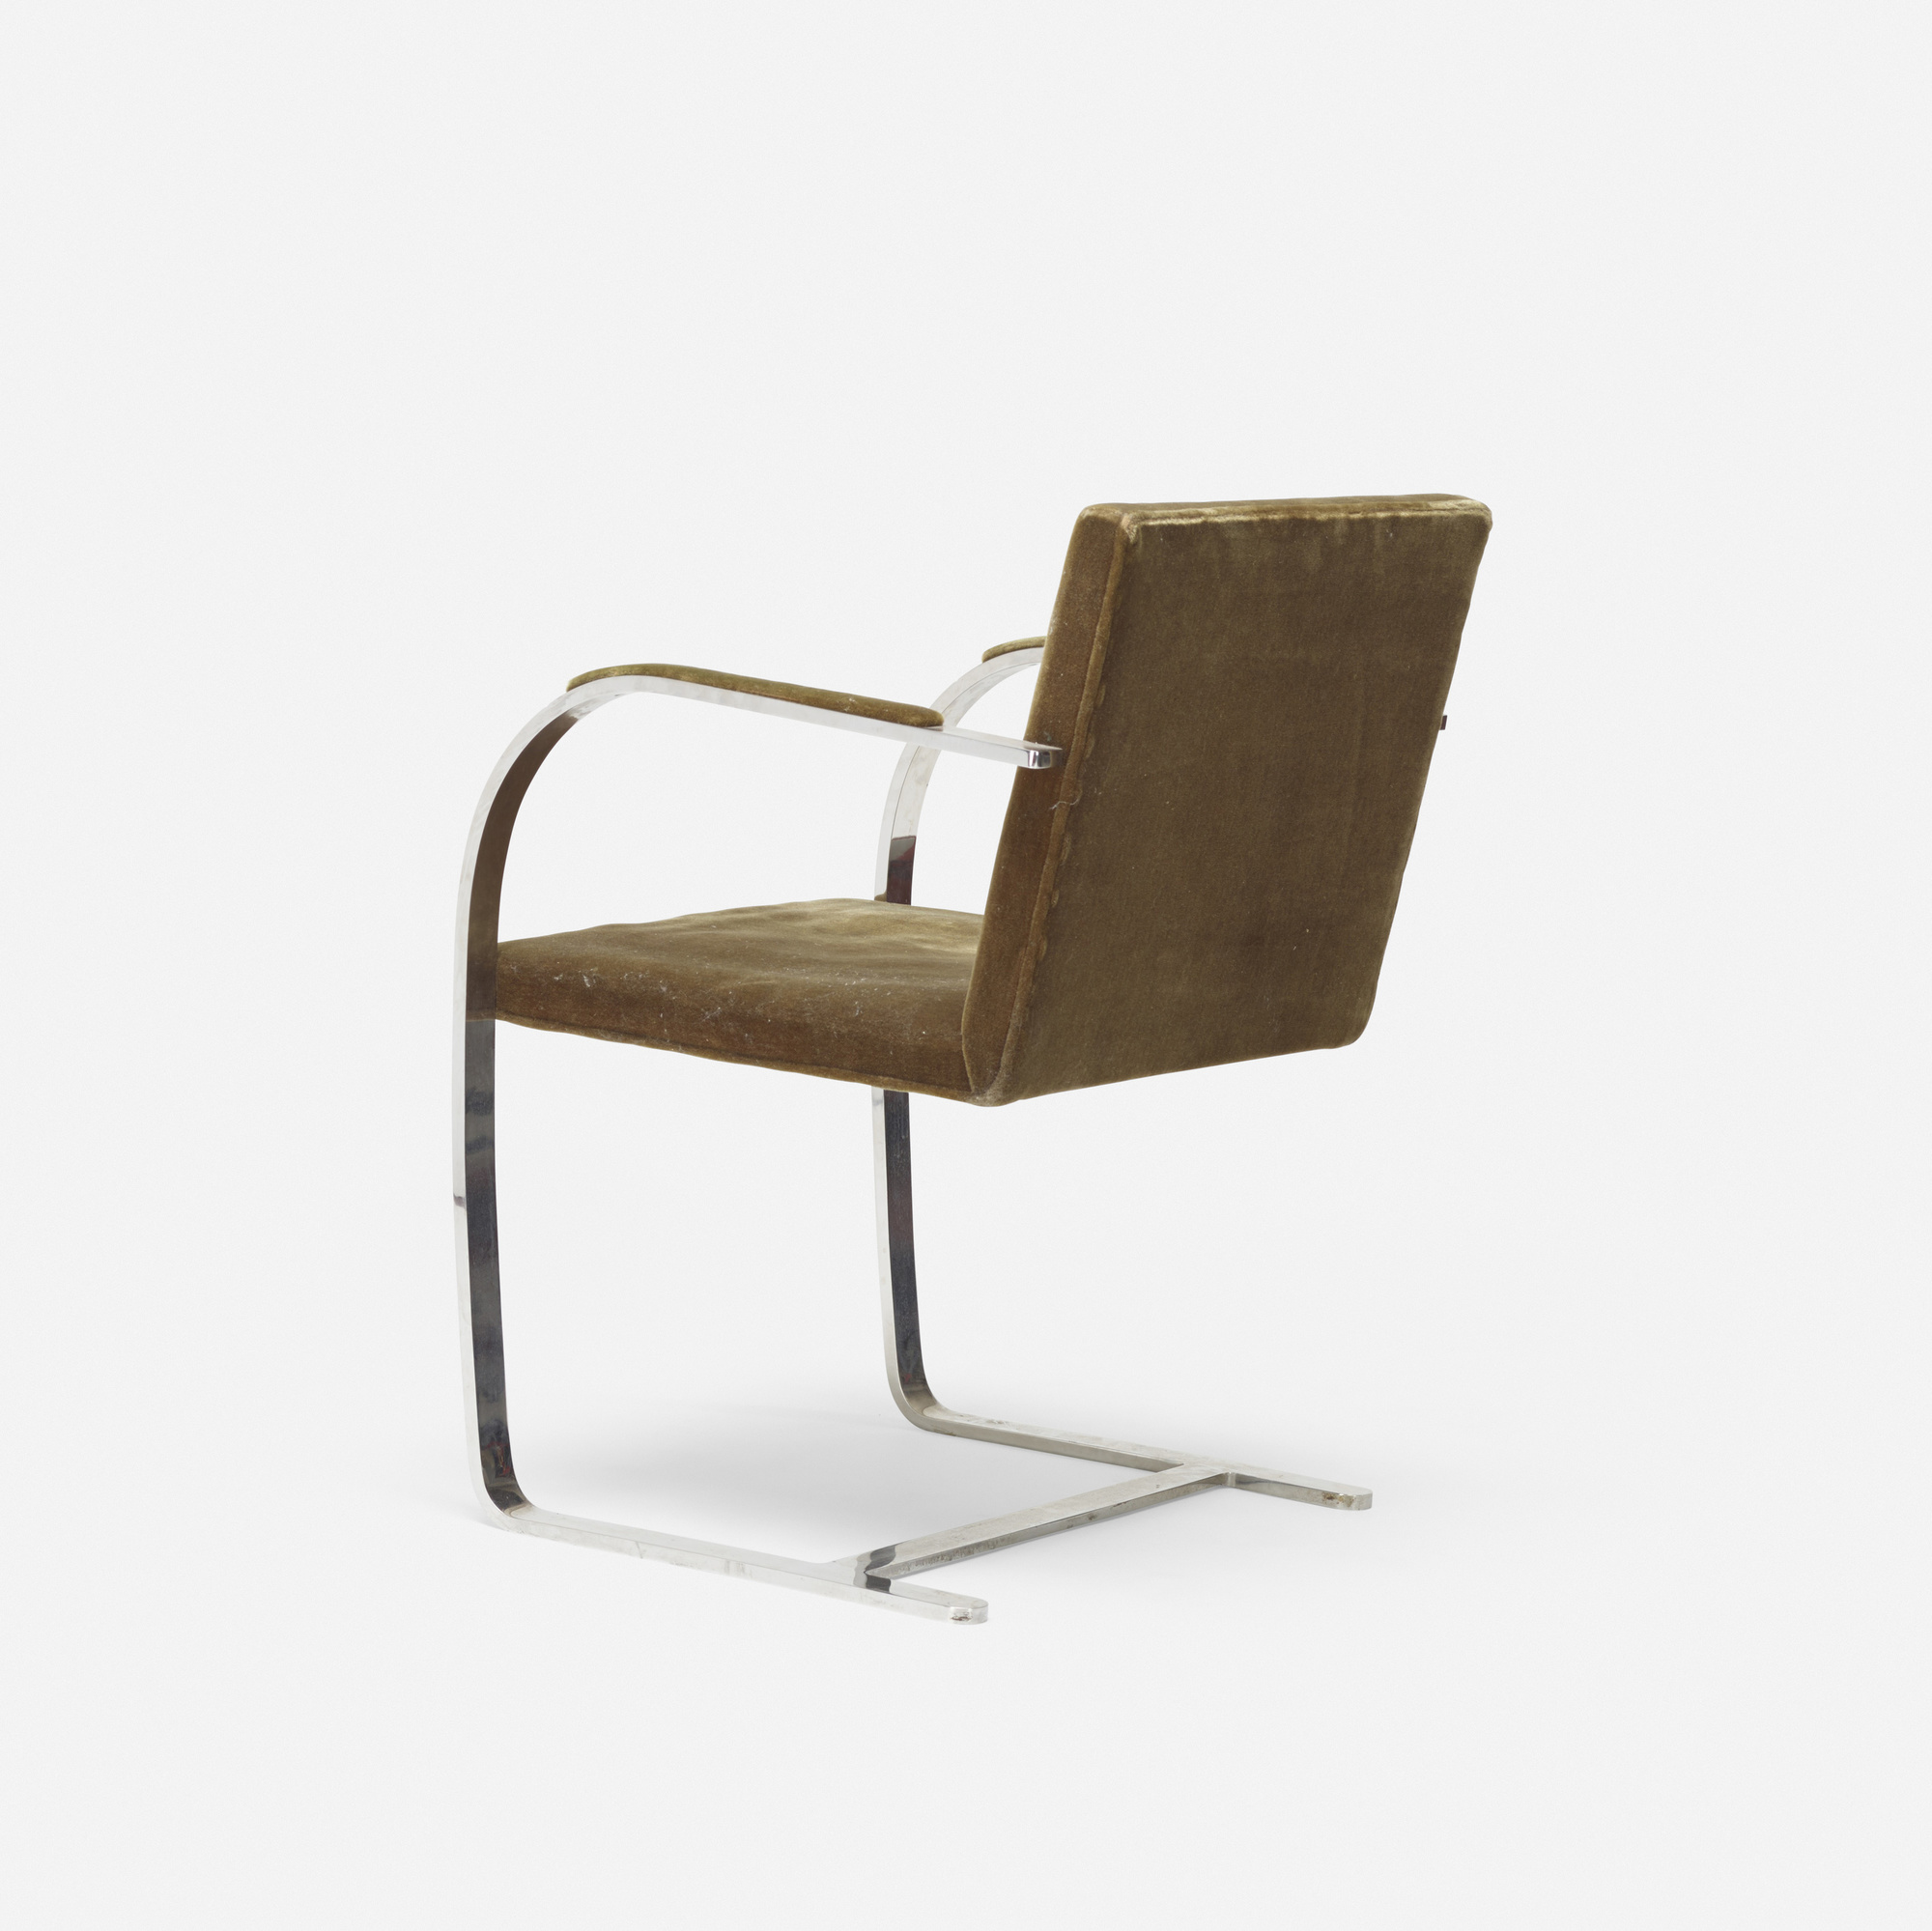 569: Ludwig Mies van der Rohe / Brno chair (2 of 2)